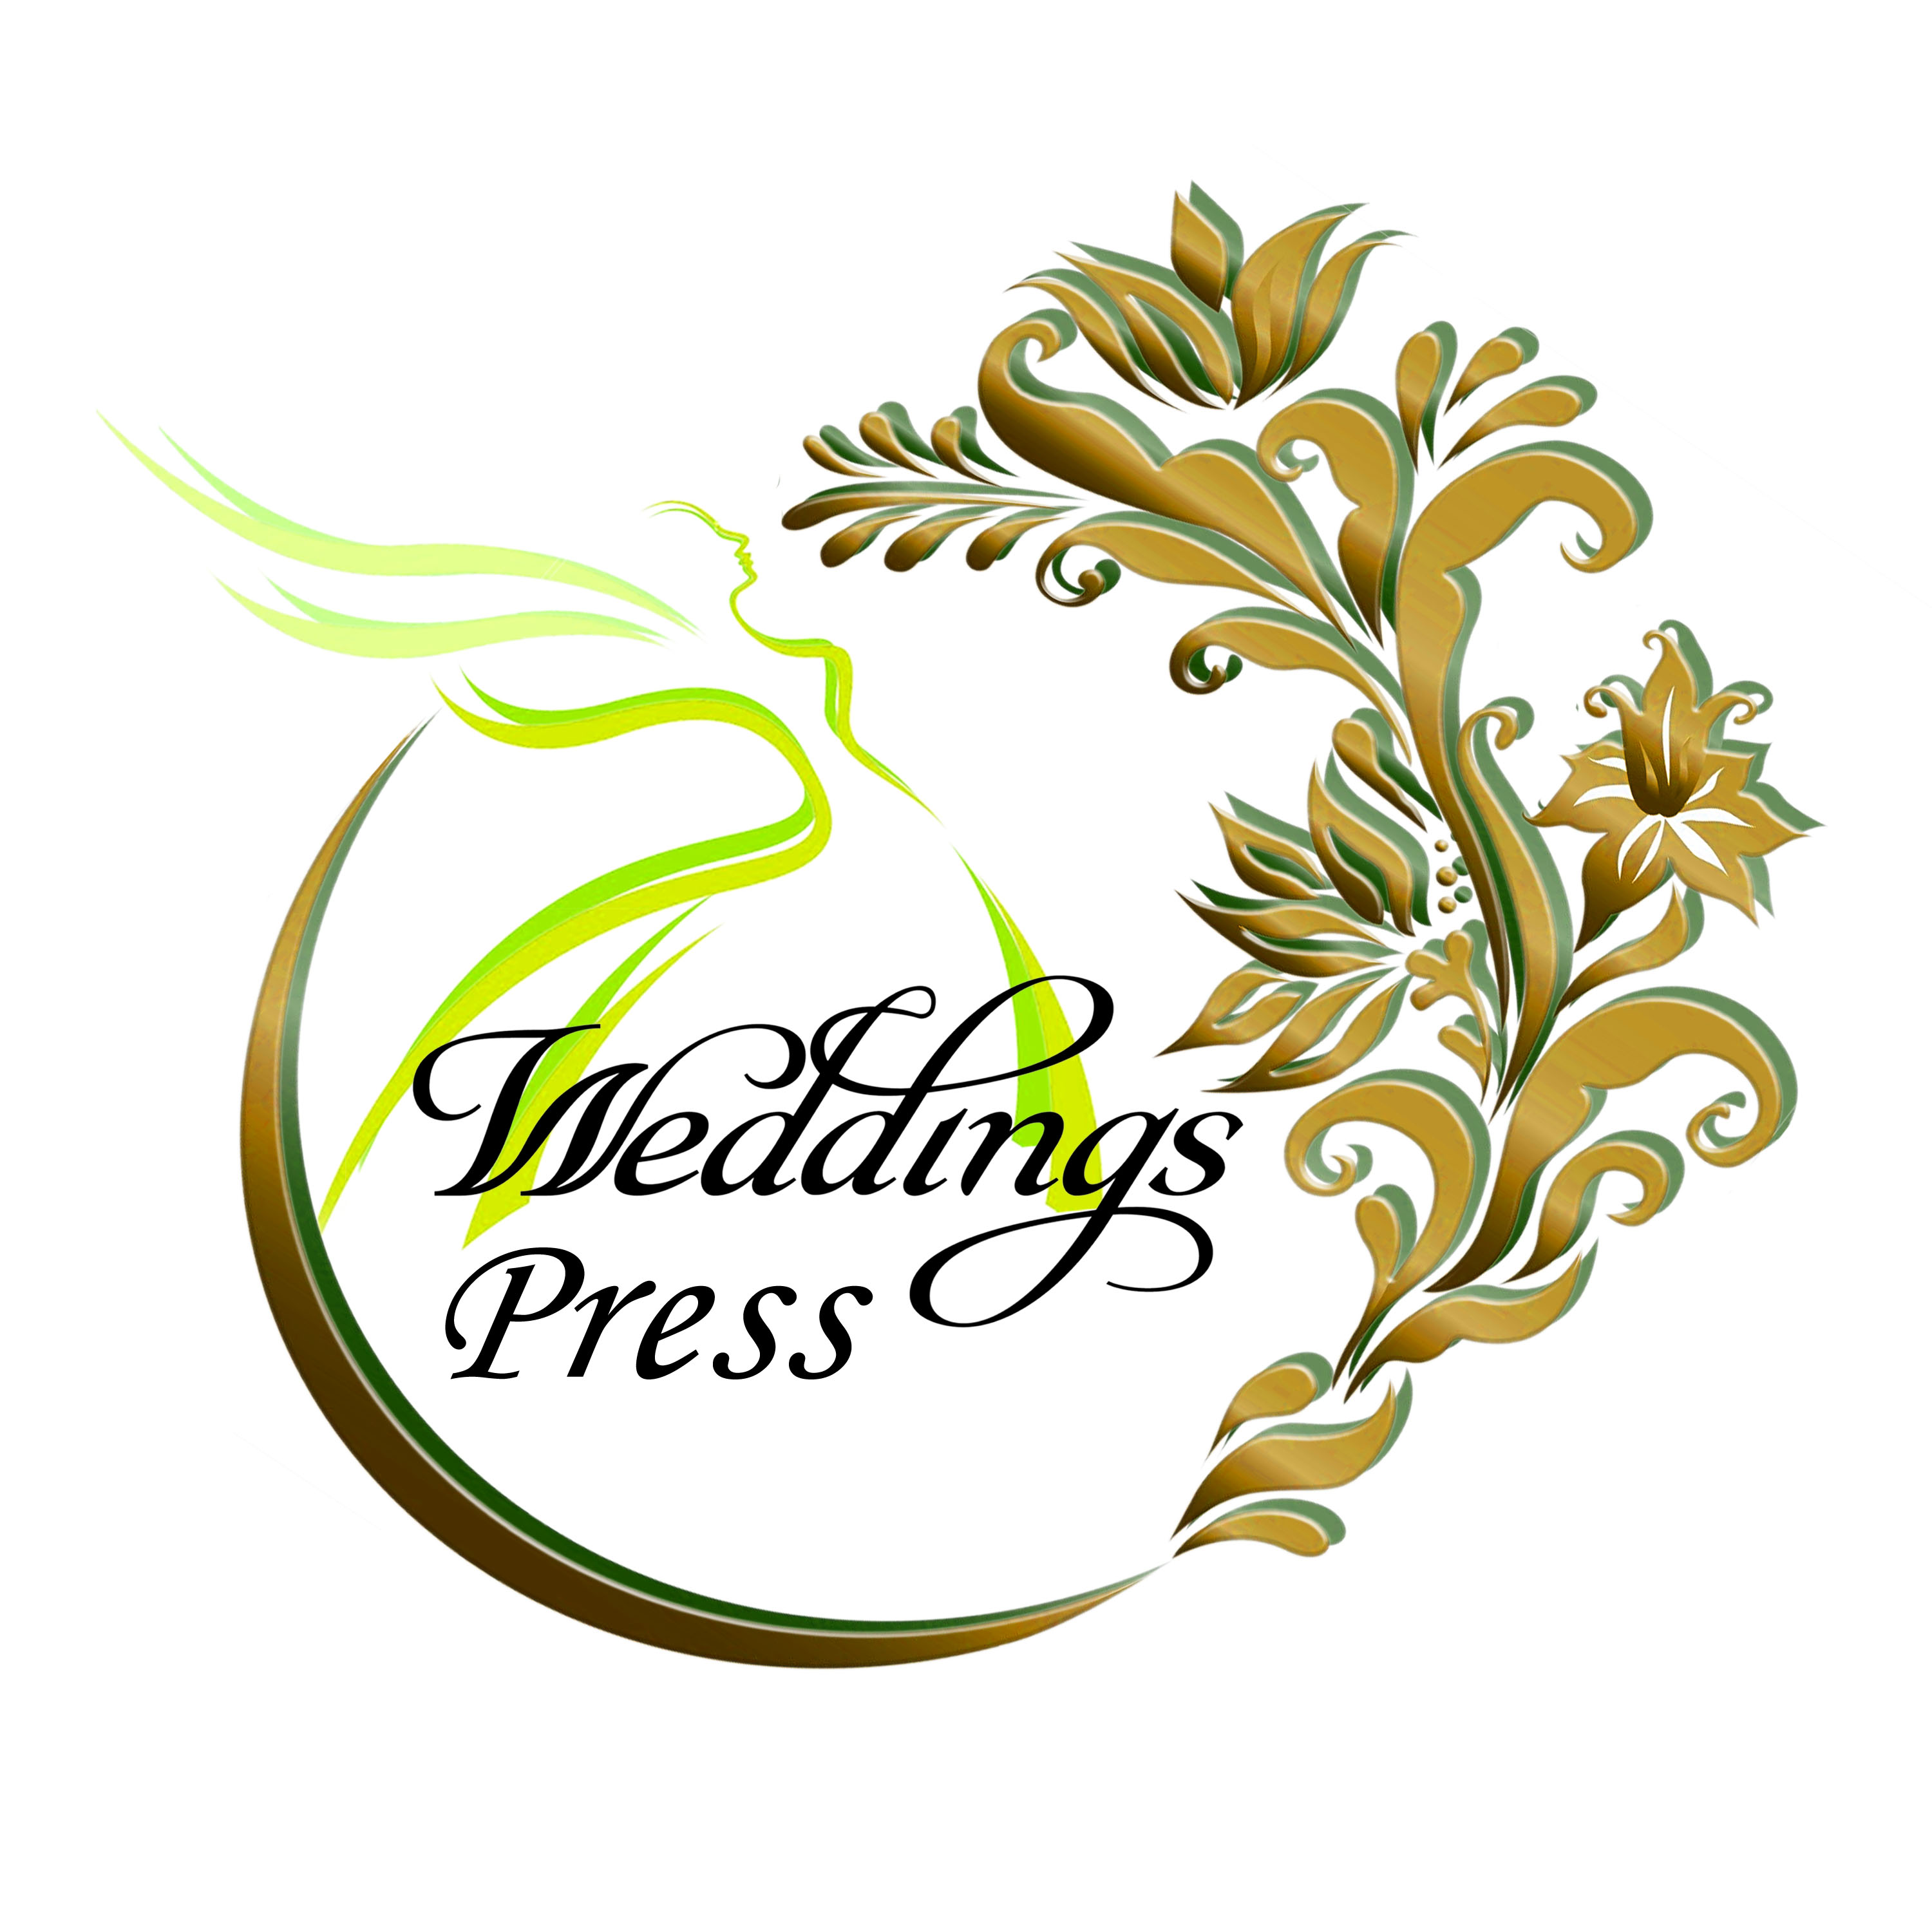 Logo Design by Roberto Sibbaluca - Entry No. 67 in the Logo Design Contest Wedding Writes Logo Design.